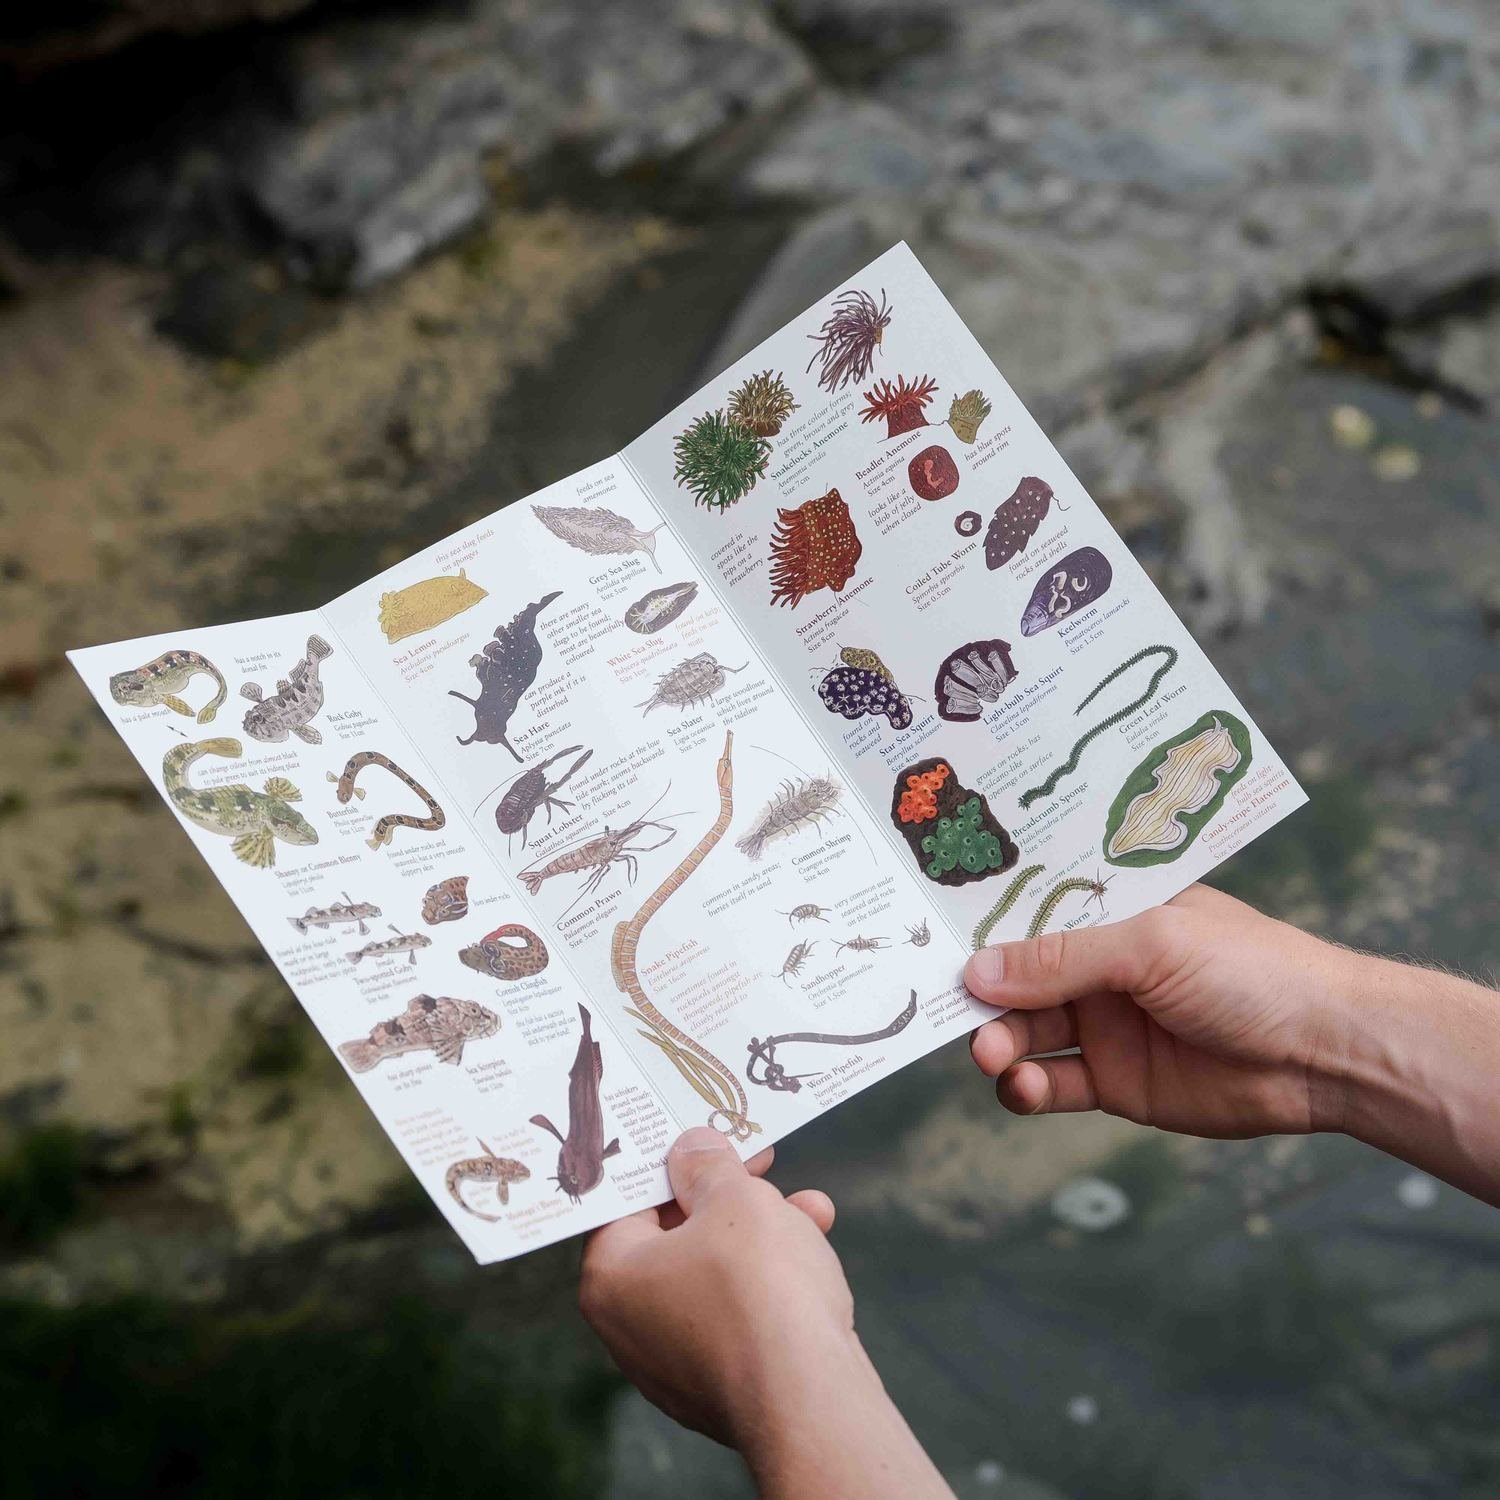 The Rockpool Guide